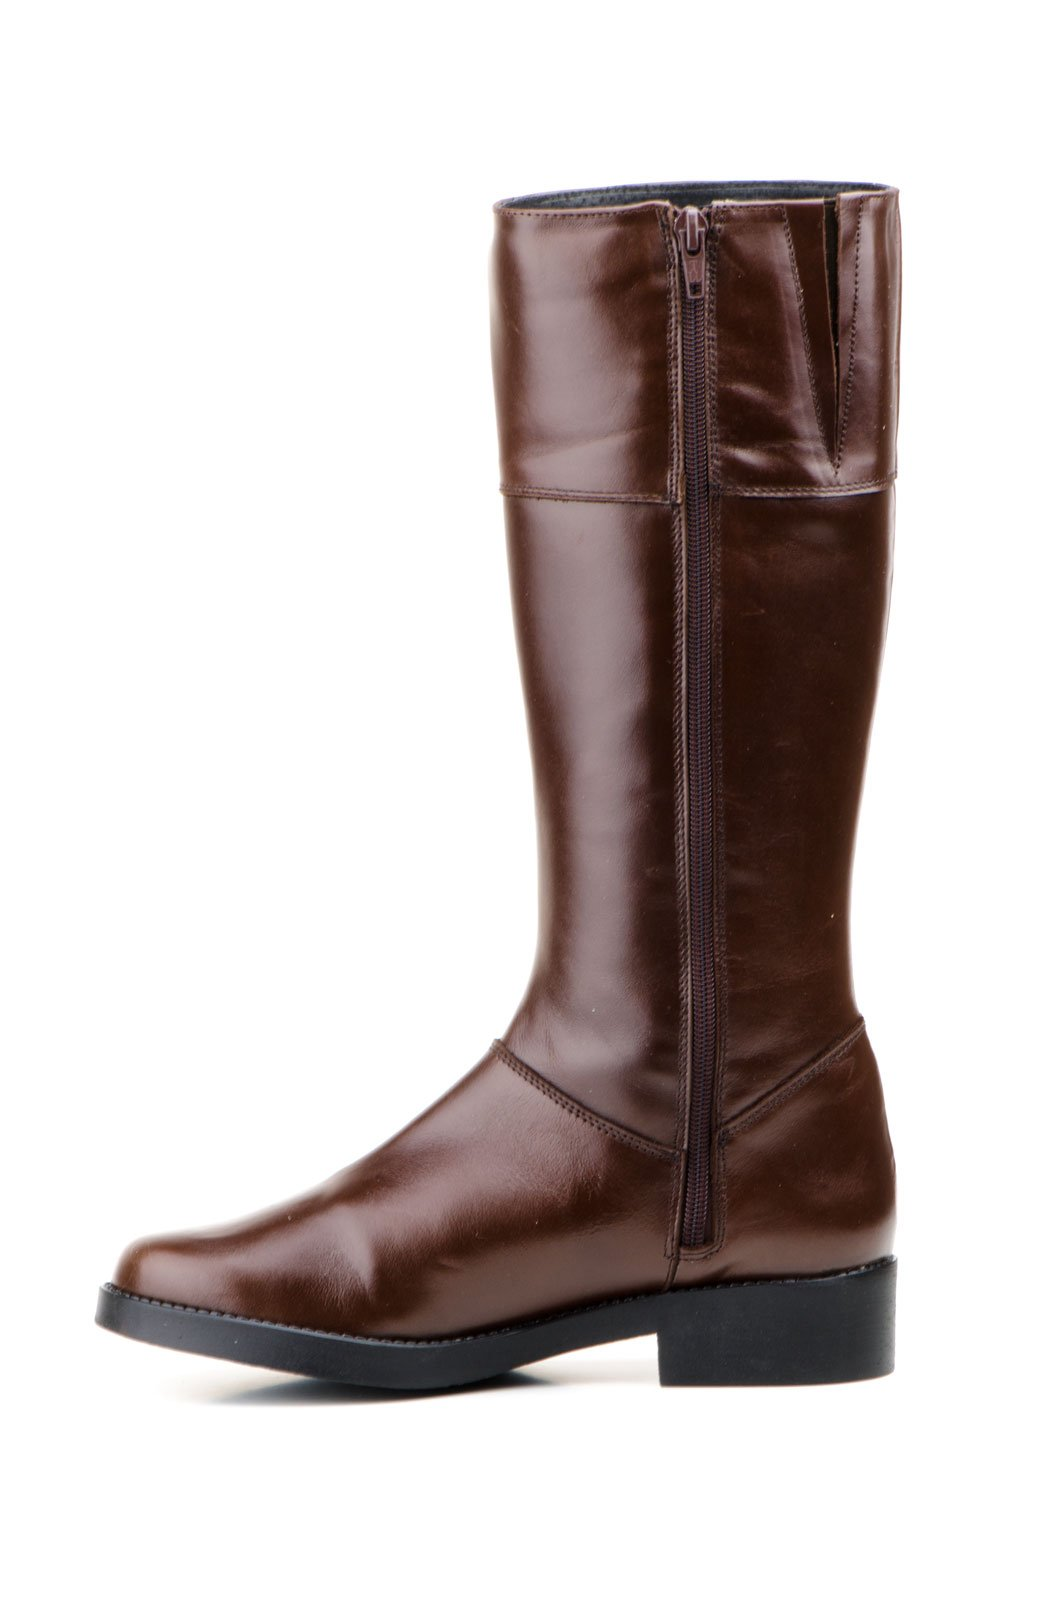 JAM-LEATHER BOOT-MADE IN SPAIN